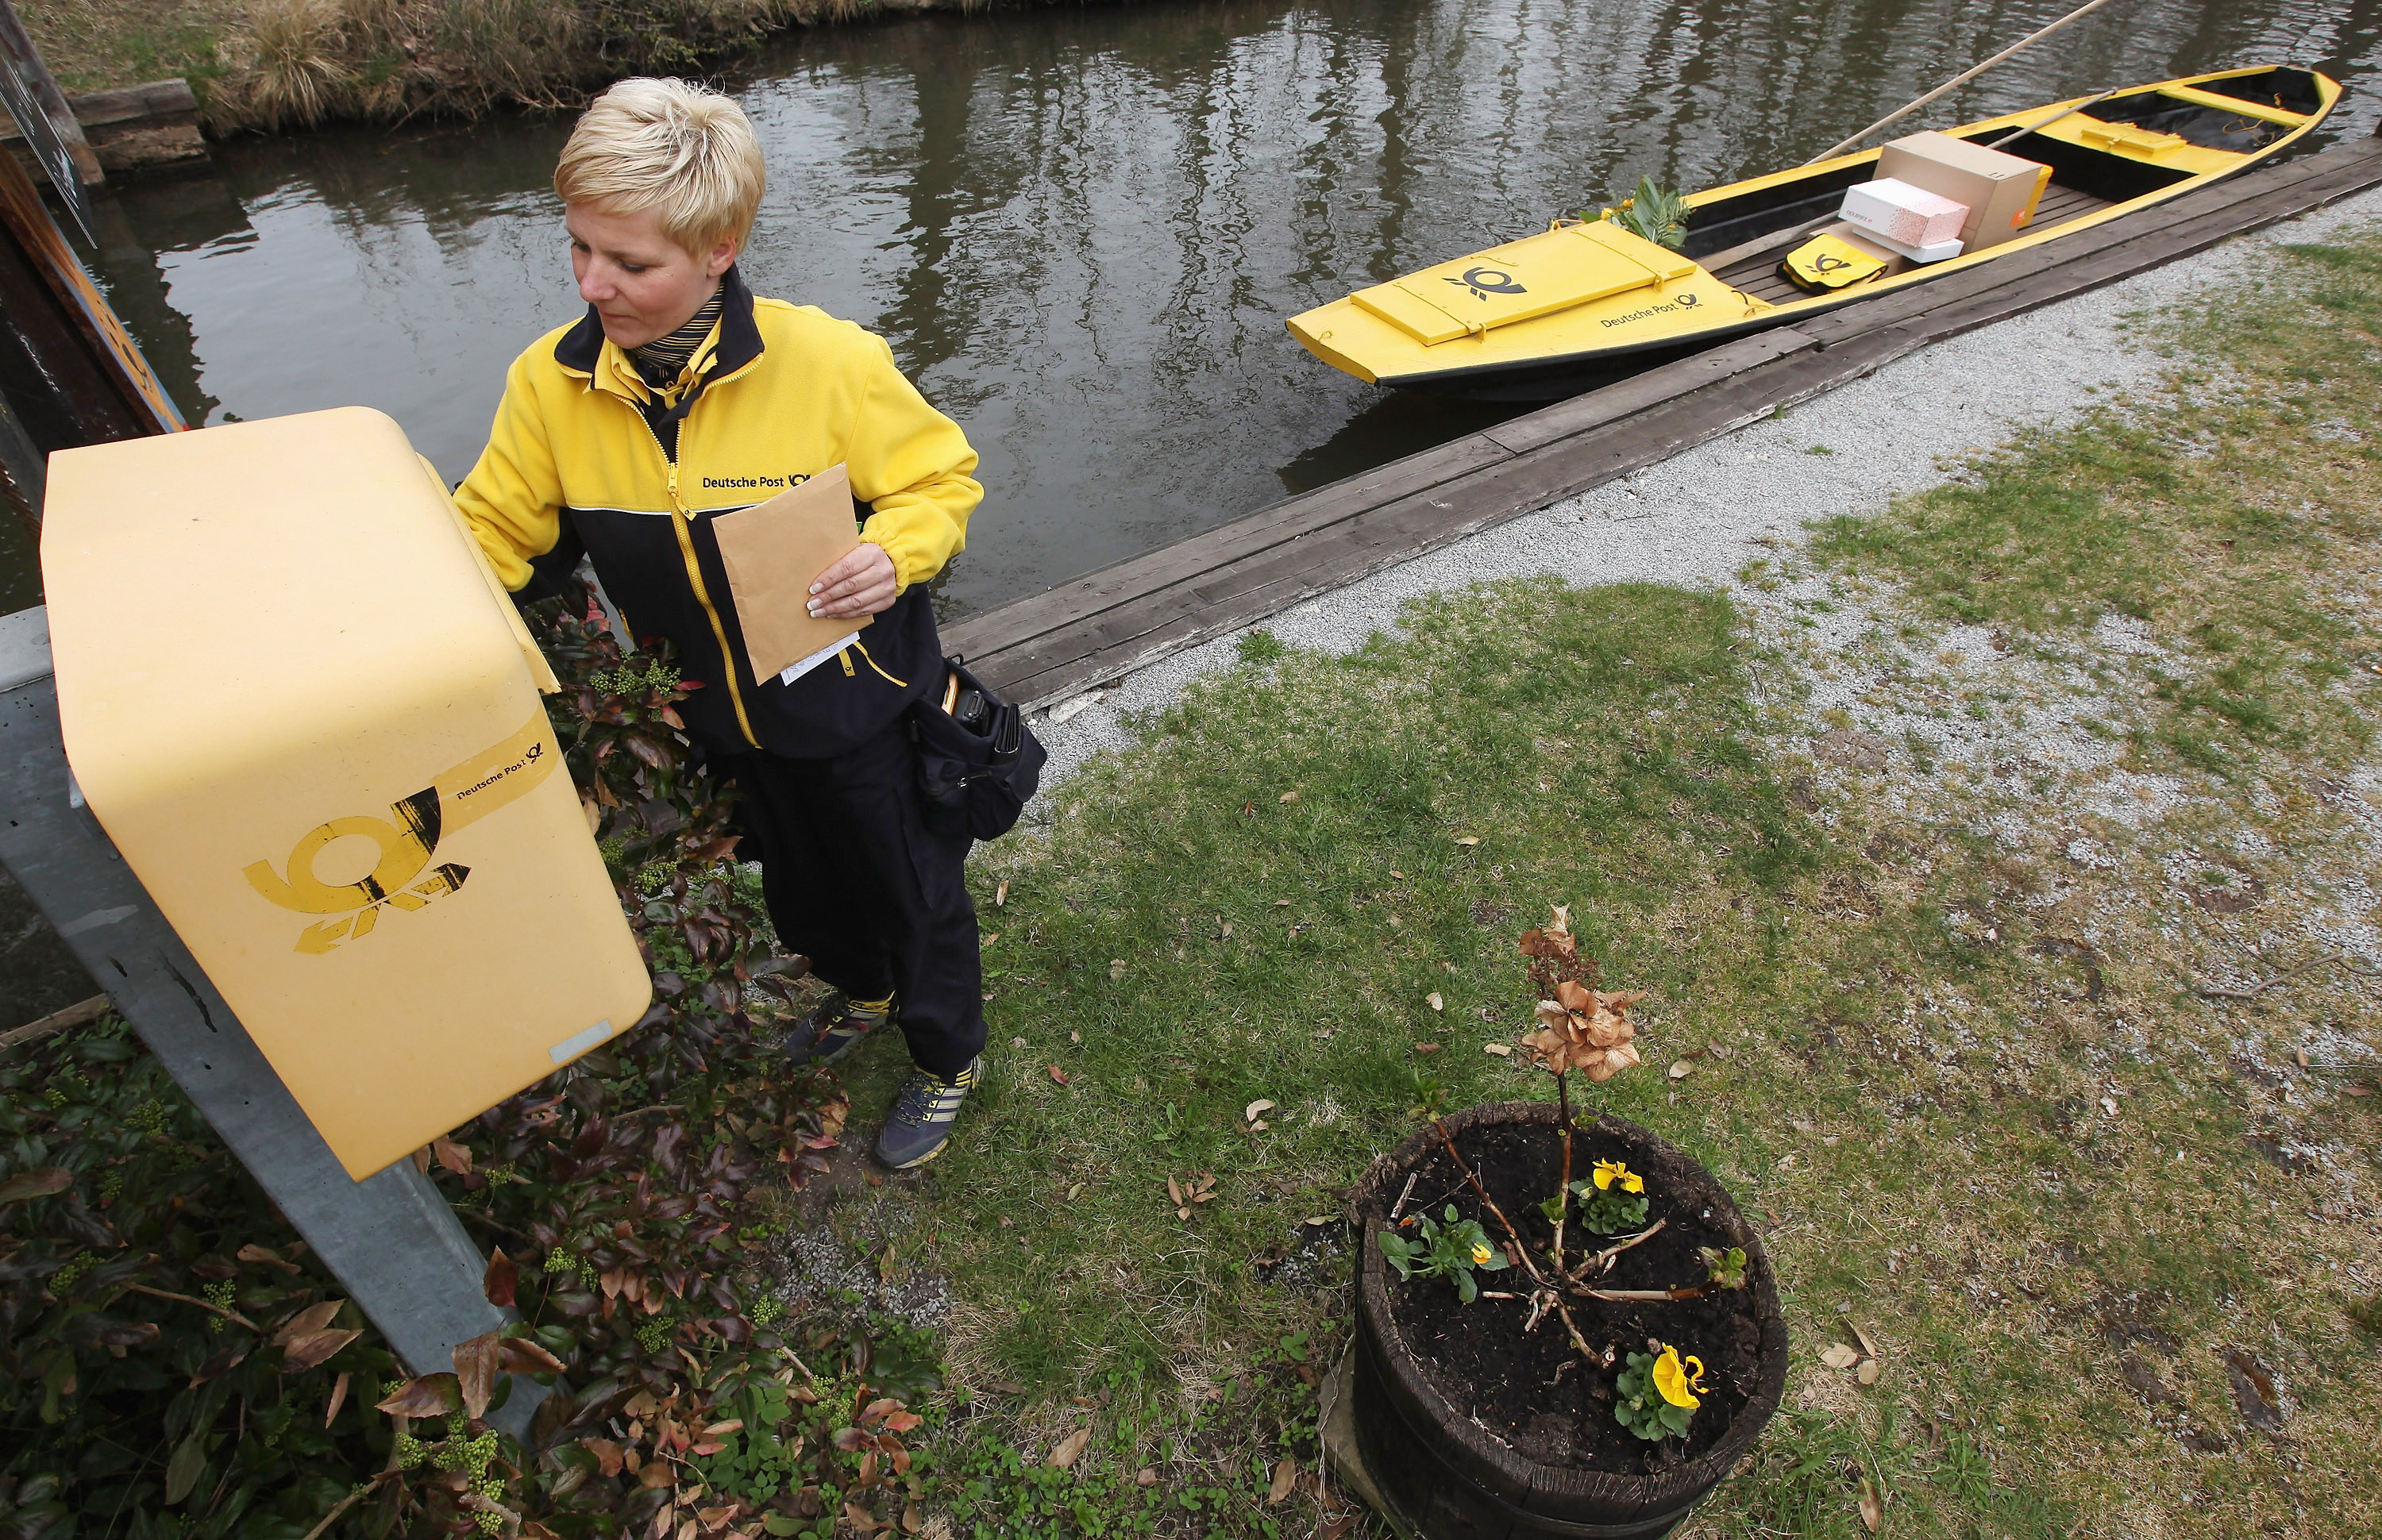 Post Delivered By Boat In Spreewald Canals